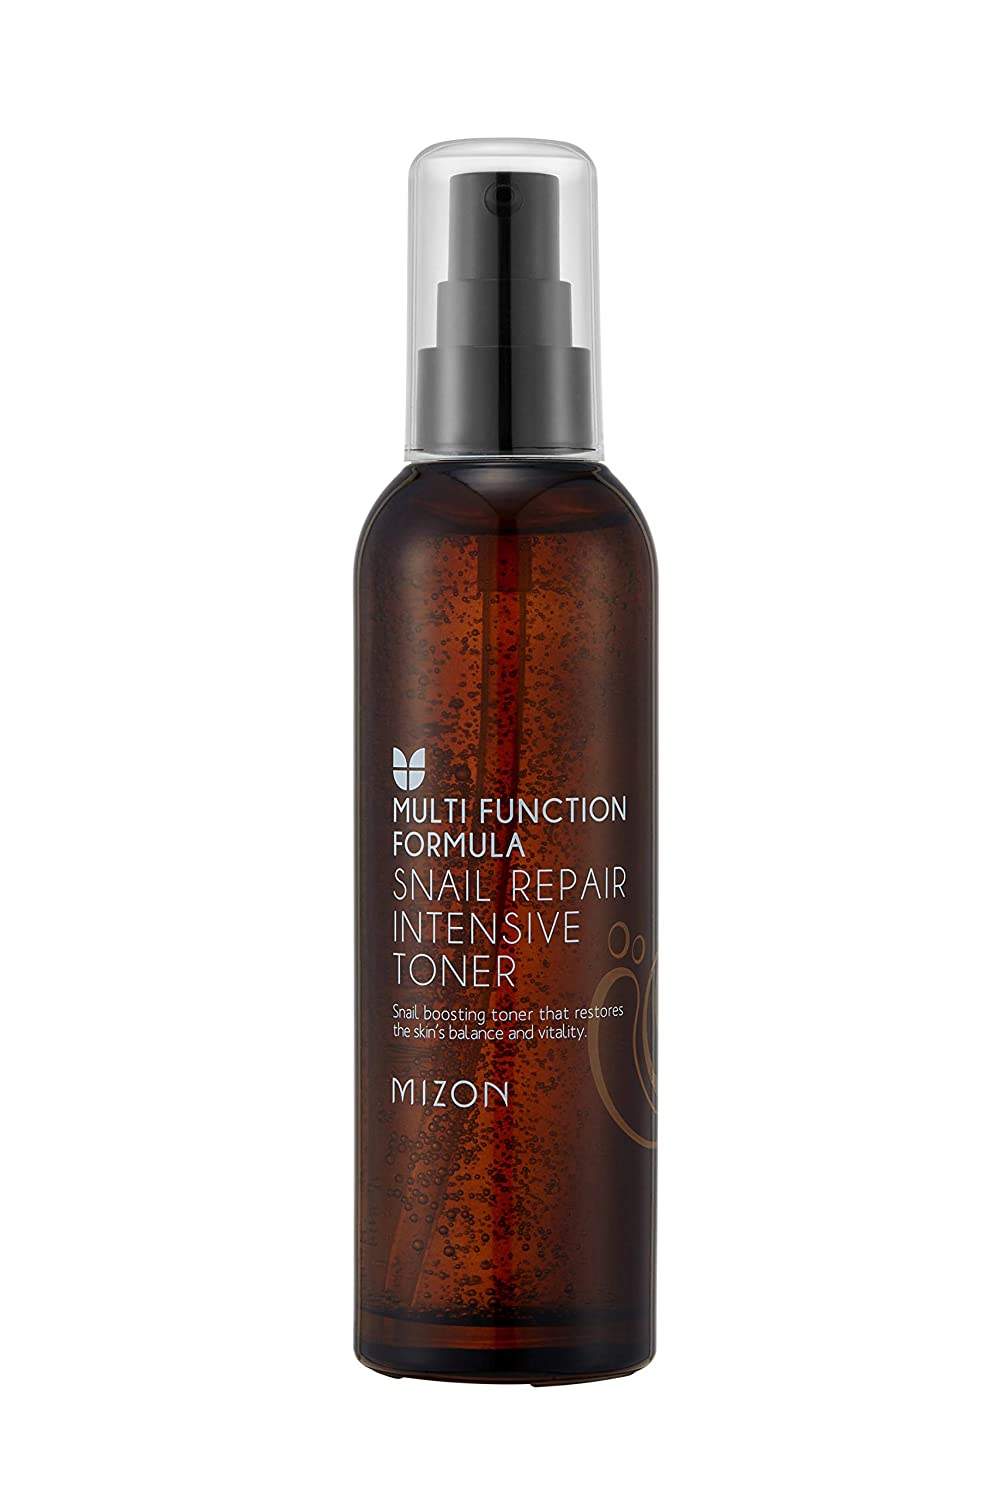 Snail Repair Intensive Korean Toner for dry skin